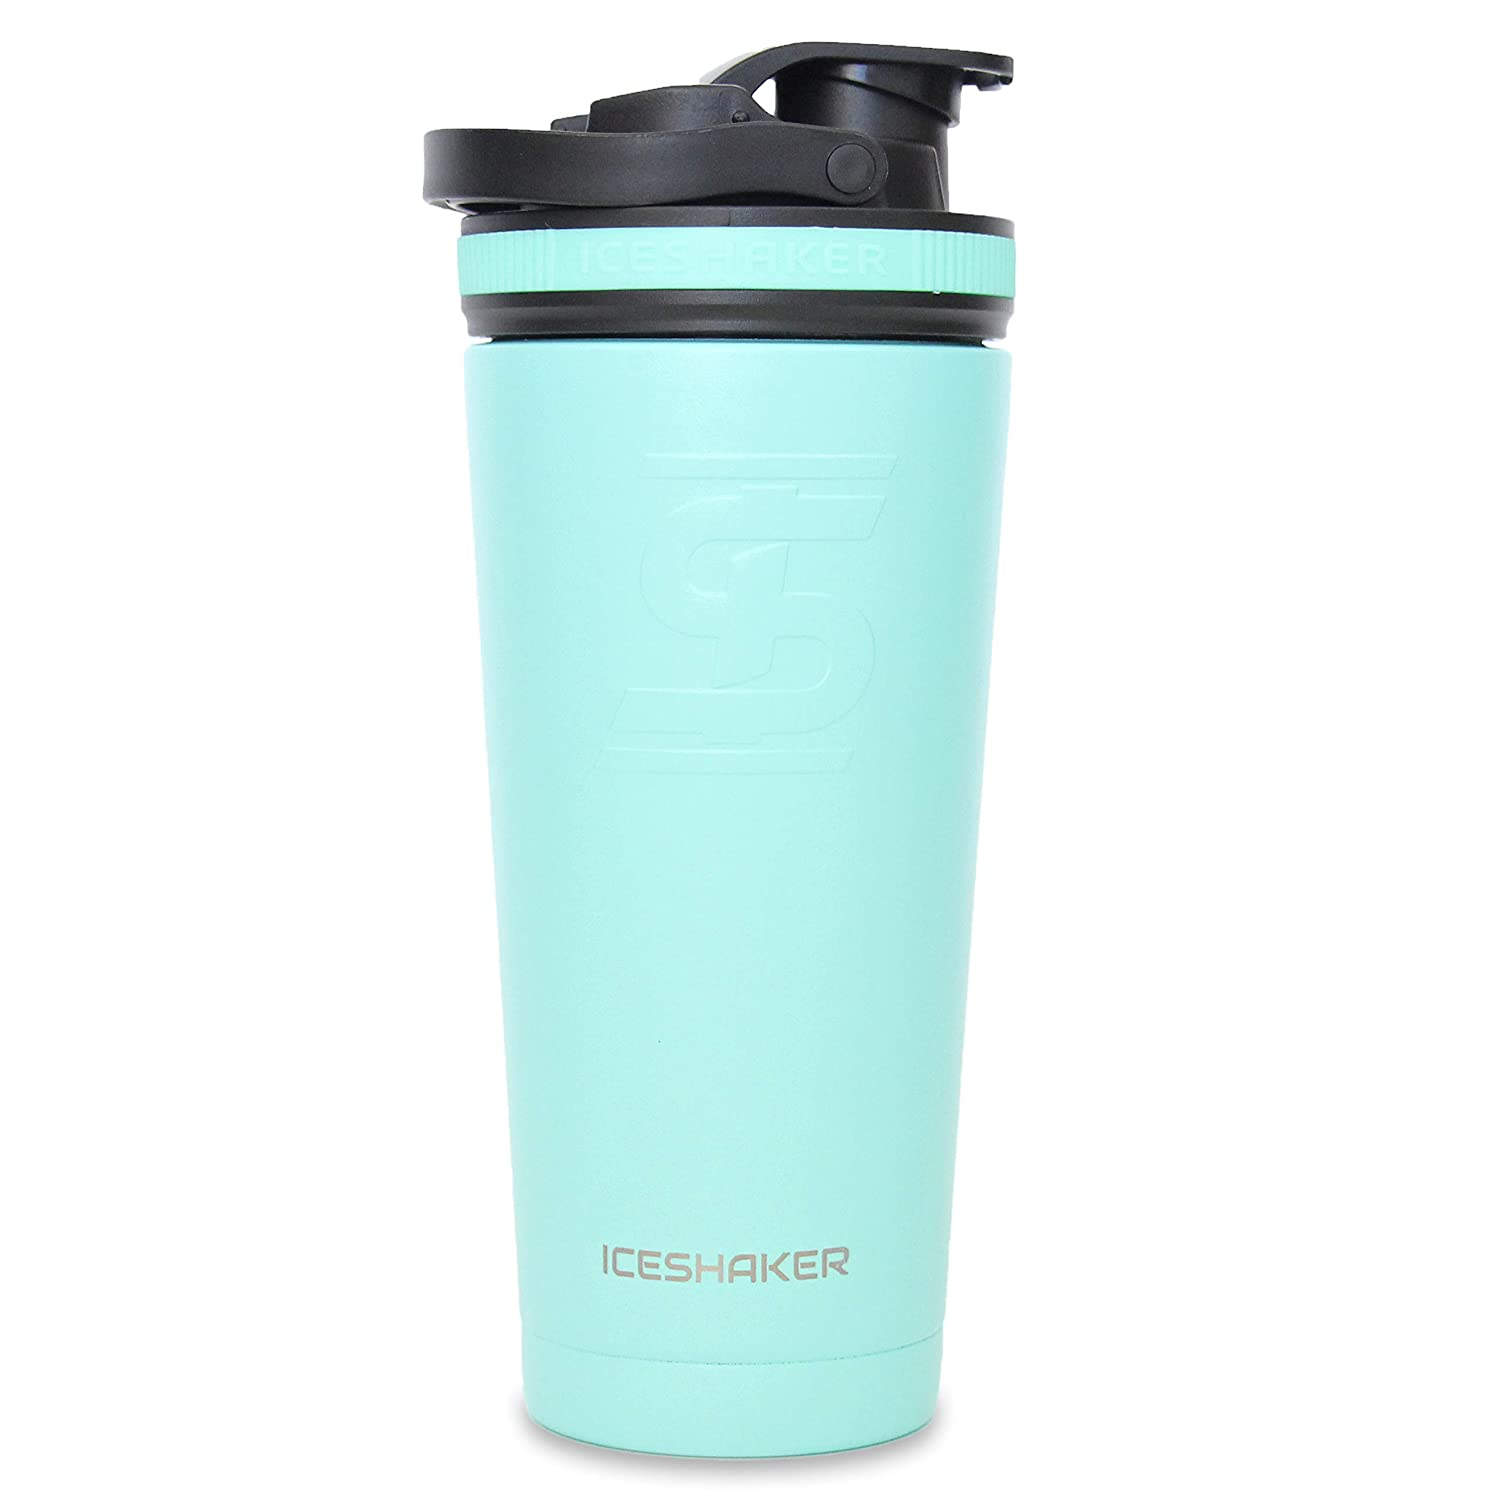 Ice Shaker Stainless Steel Insulated Water Bottle Protein Mixing Cup (As seen on Shark Tank) (Mint 26 oz)